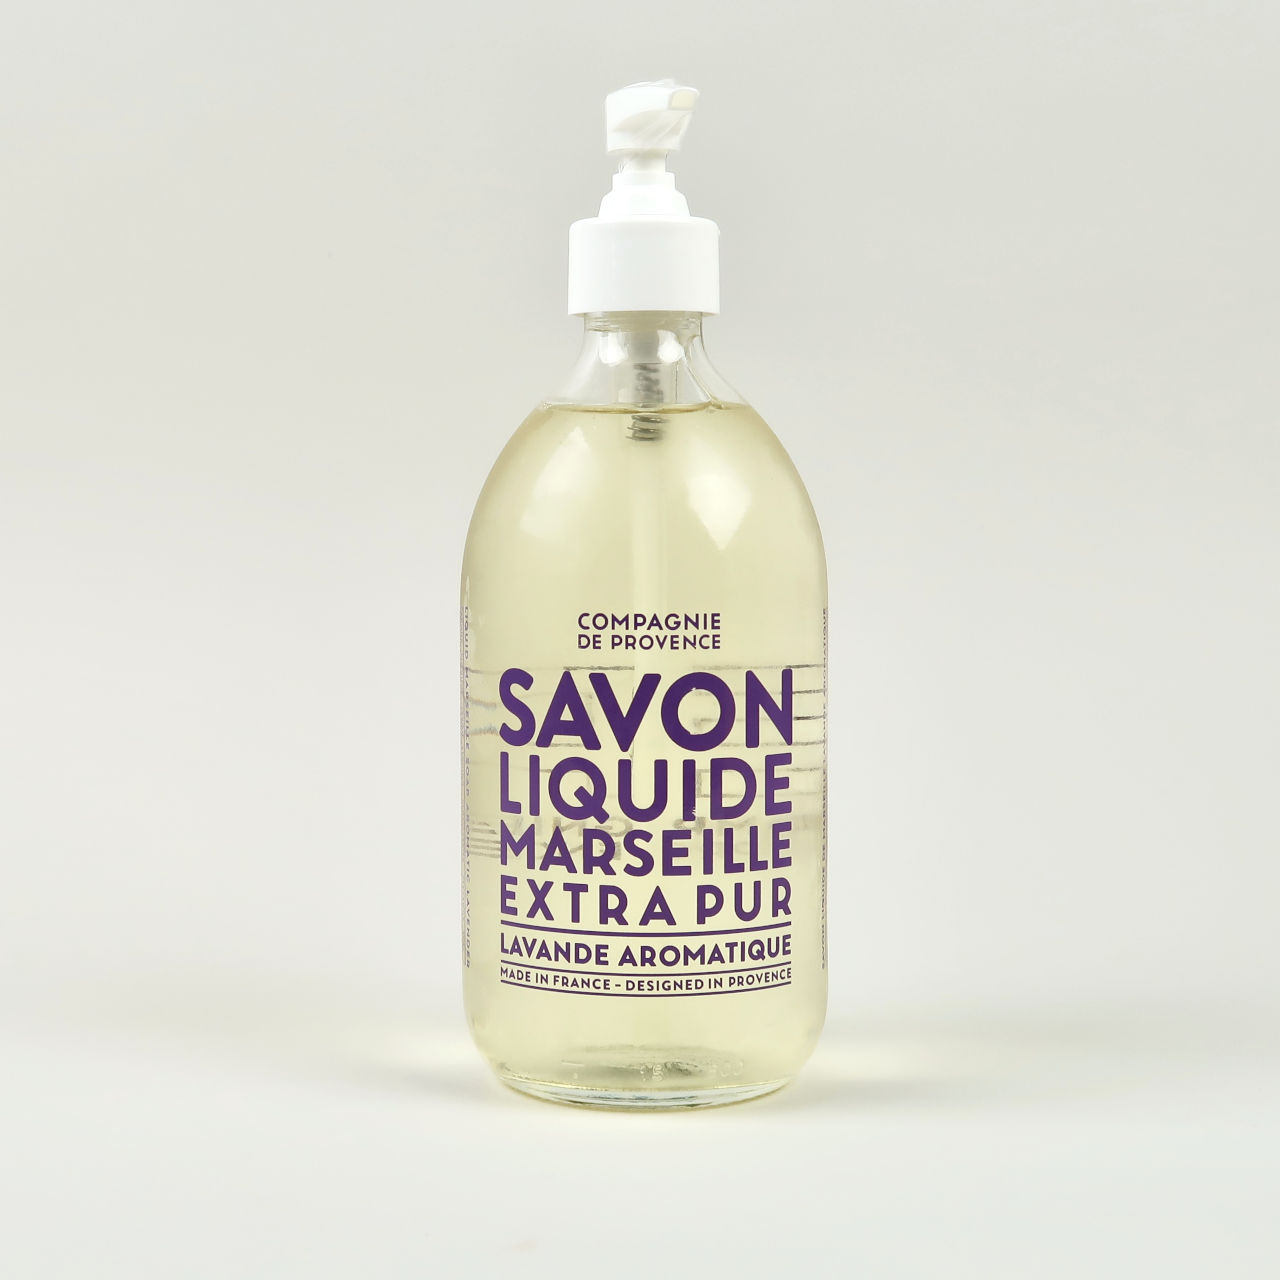 Savon Liquid Marseille - 495ml - Lavande